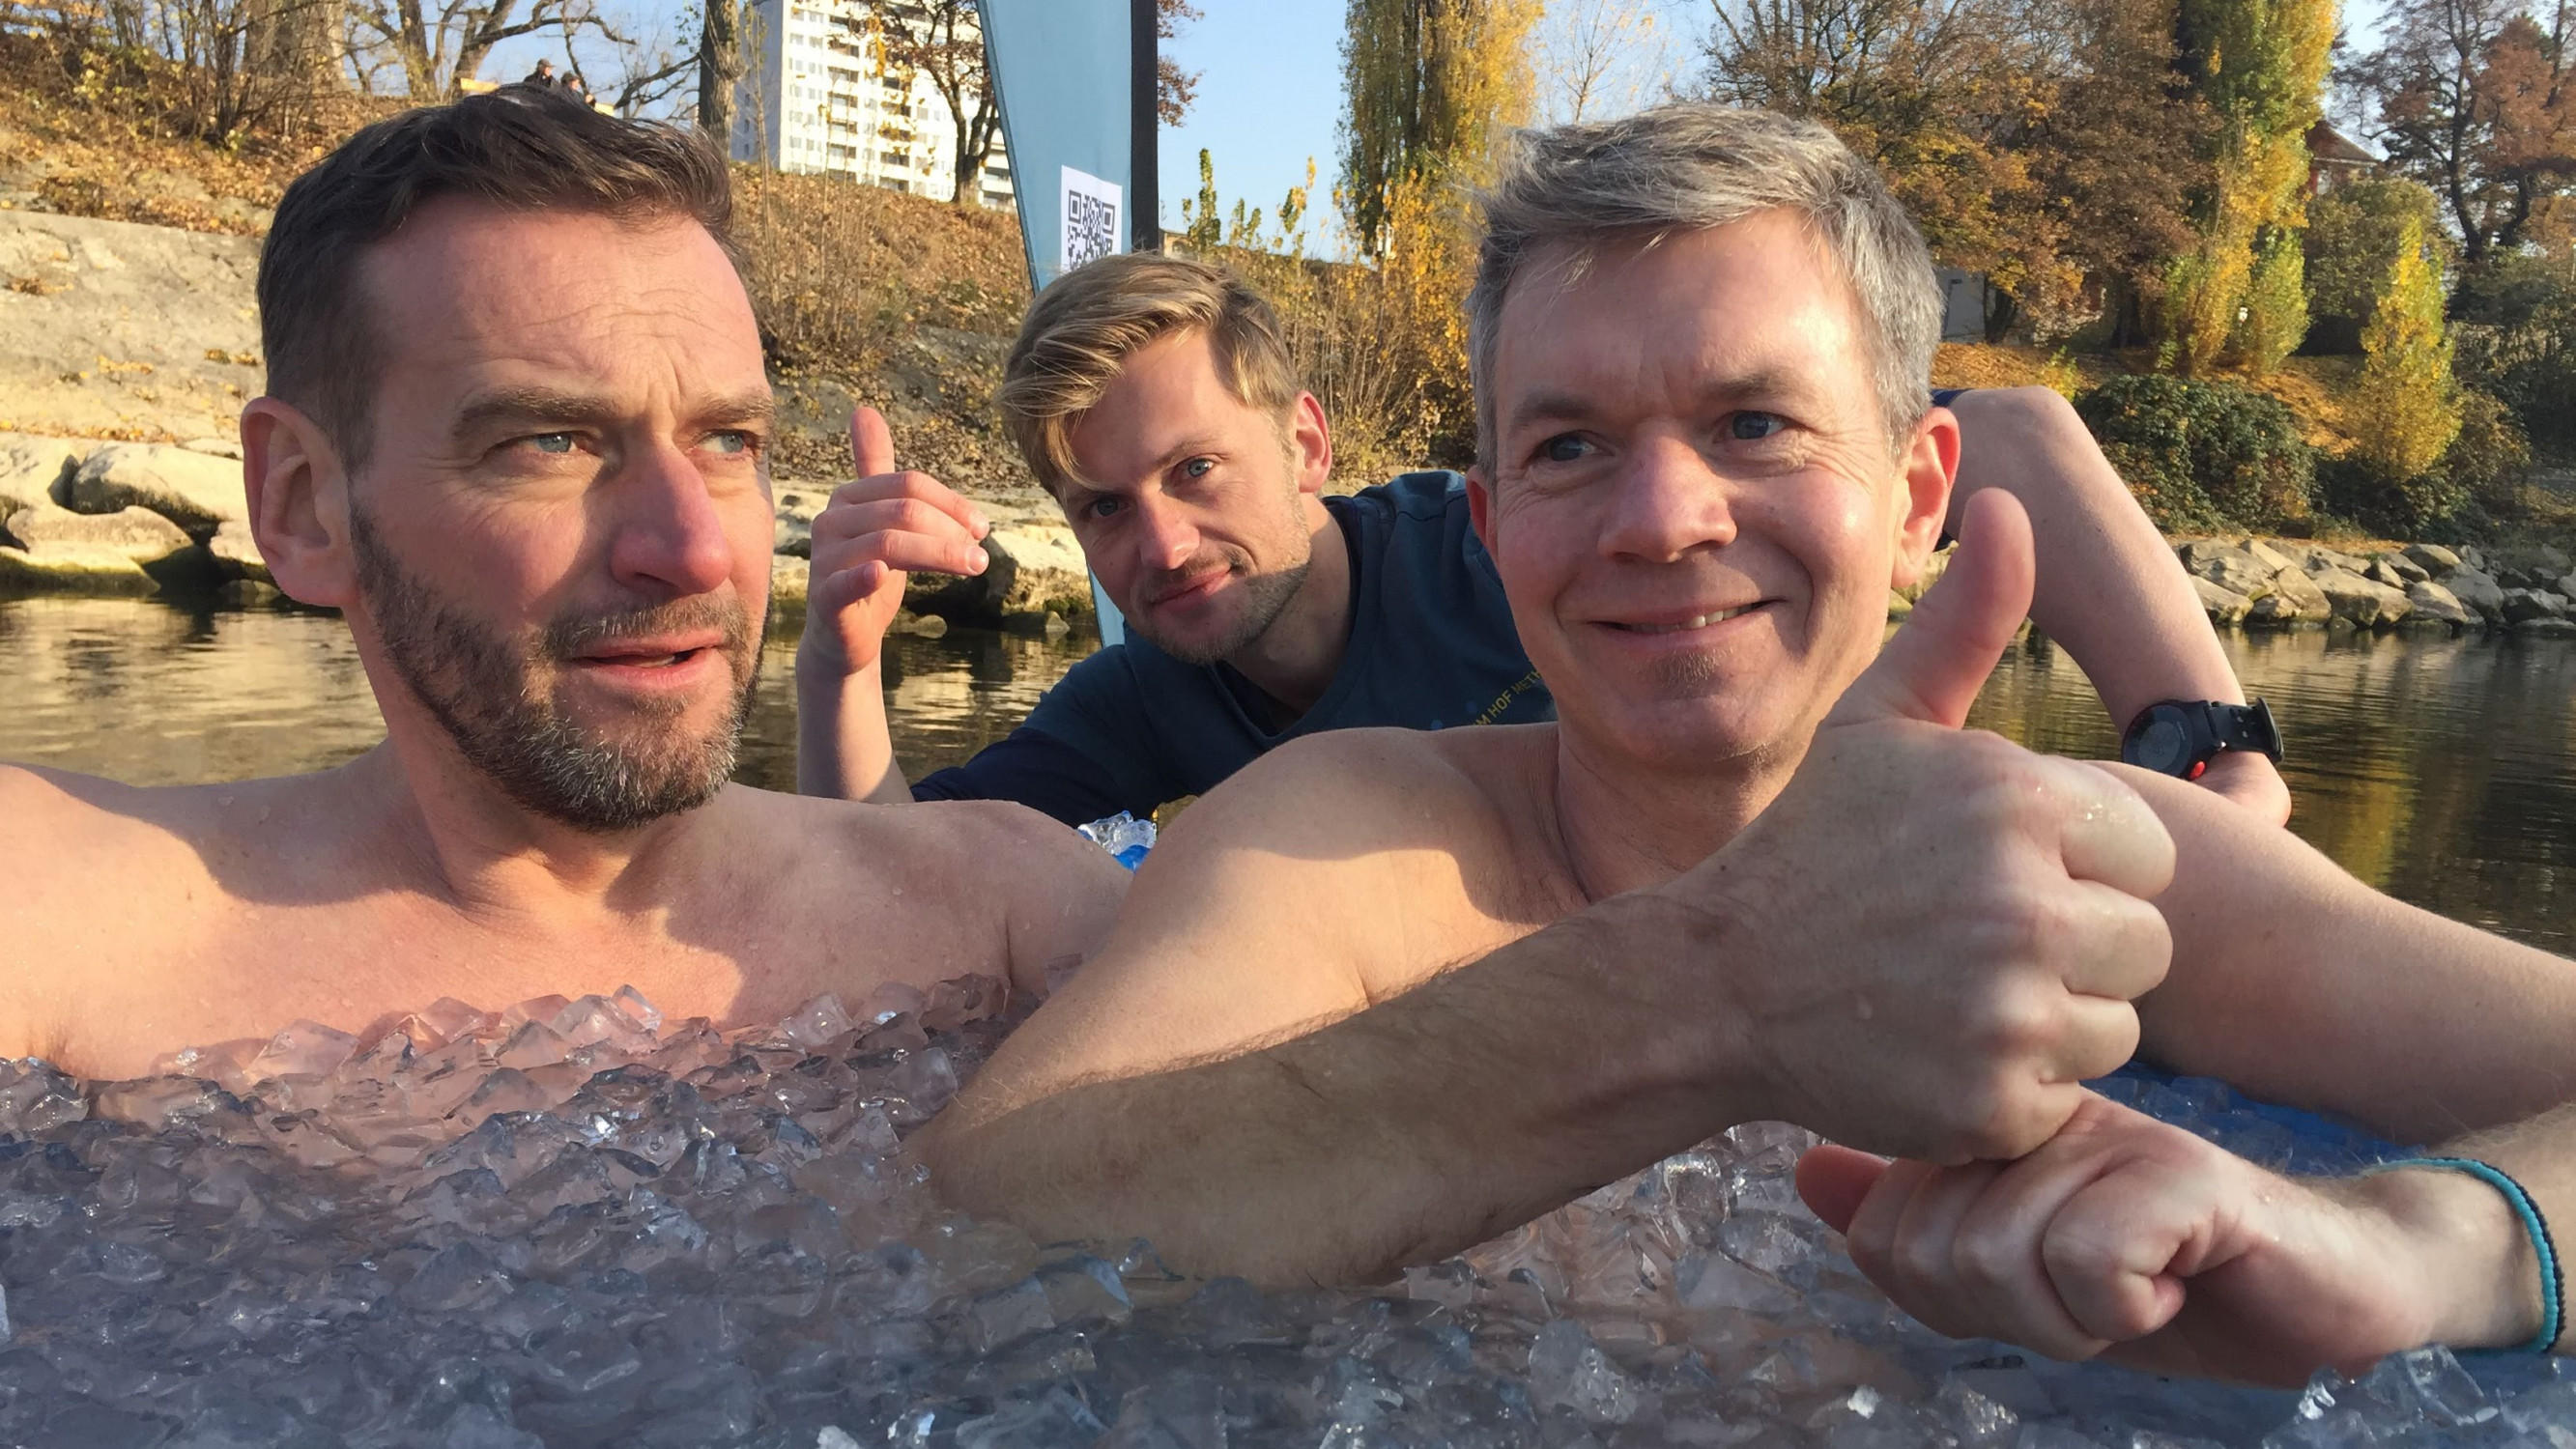 Image 8 of 12 - Experience the Wim Hof Method to get an impression of  at